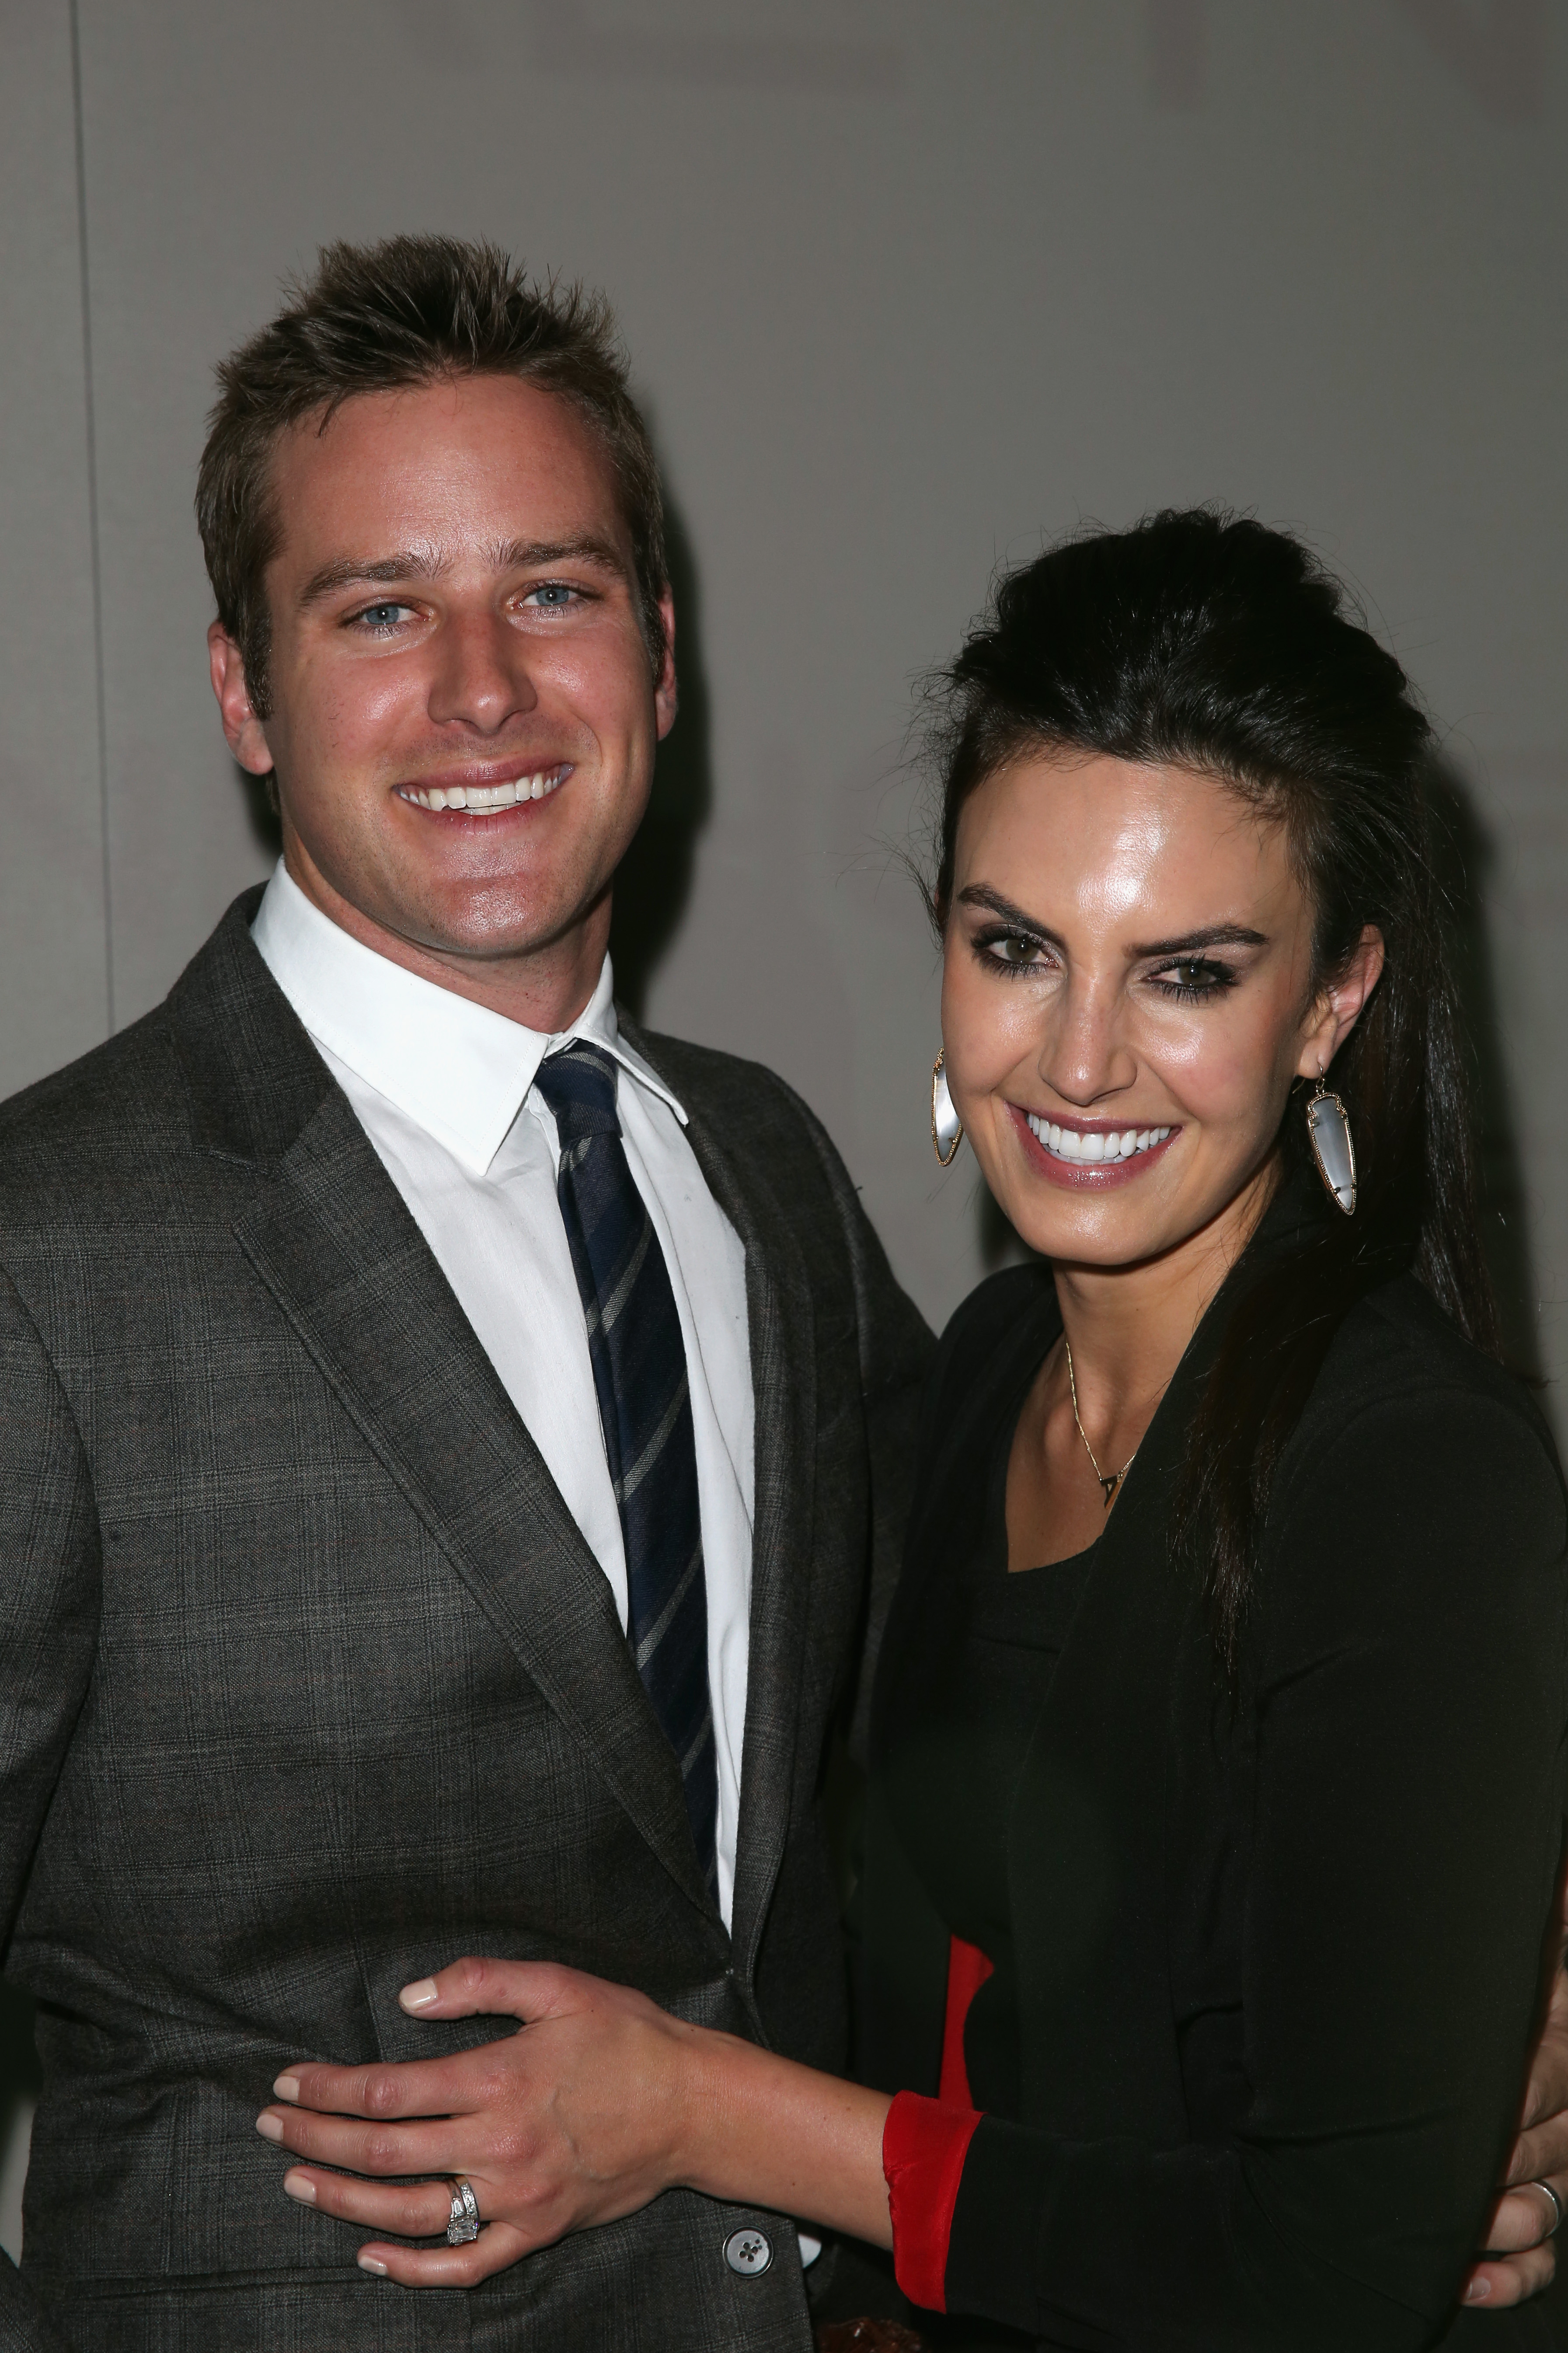 Armie Hammer and his wife, Elizabeth Chambers, smiled big backstage at the Kenneth Cole show on Thursday.